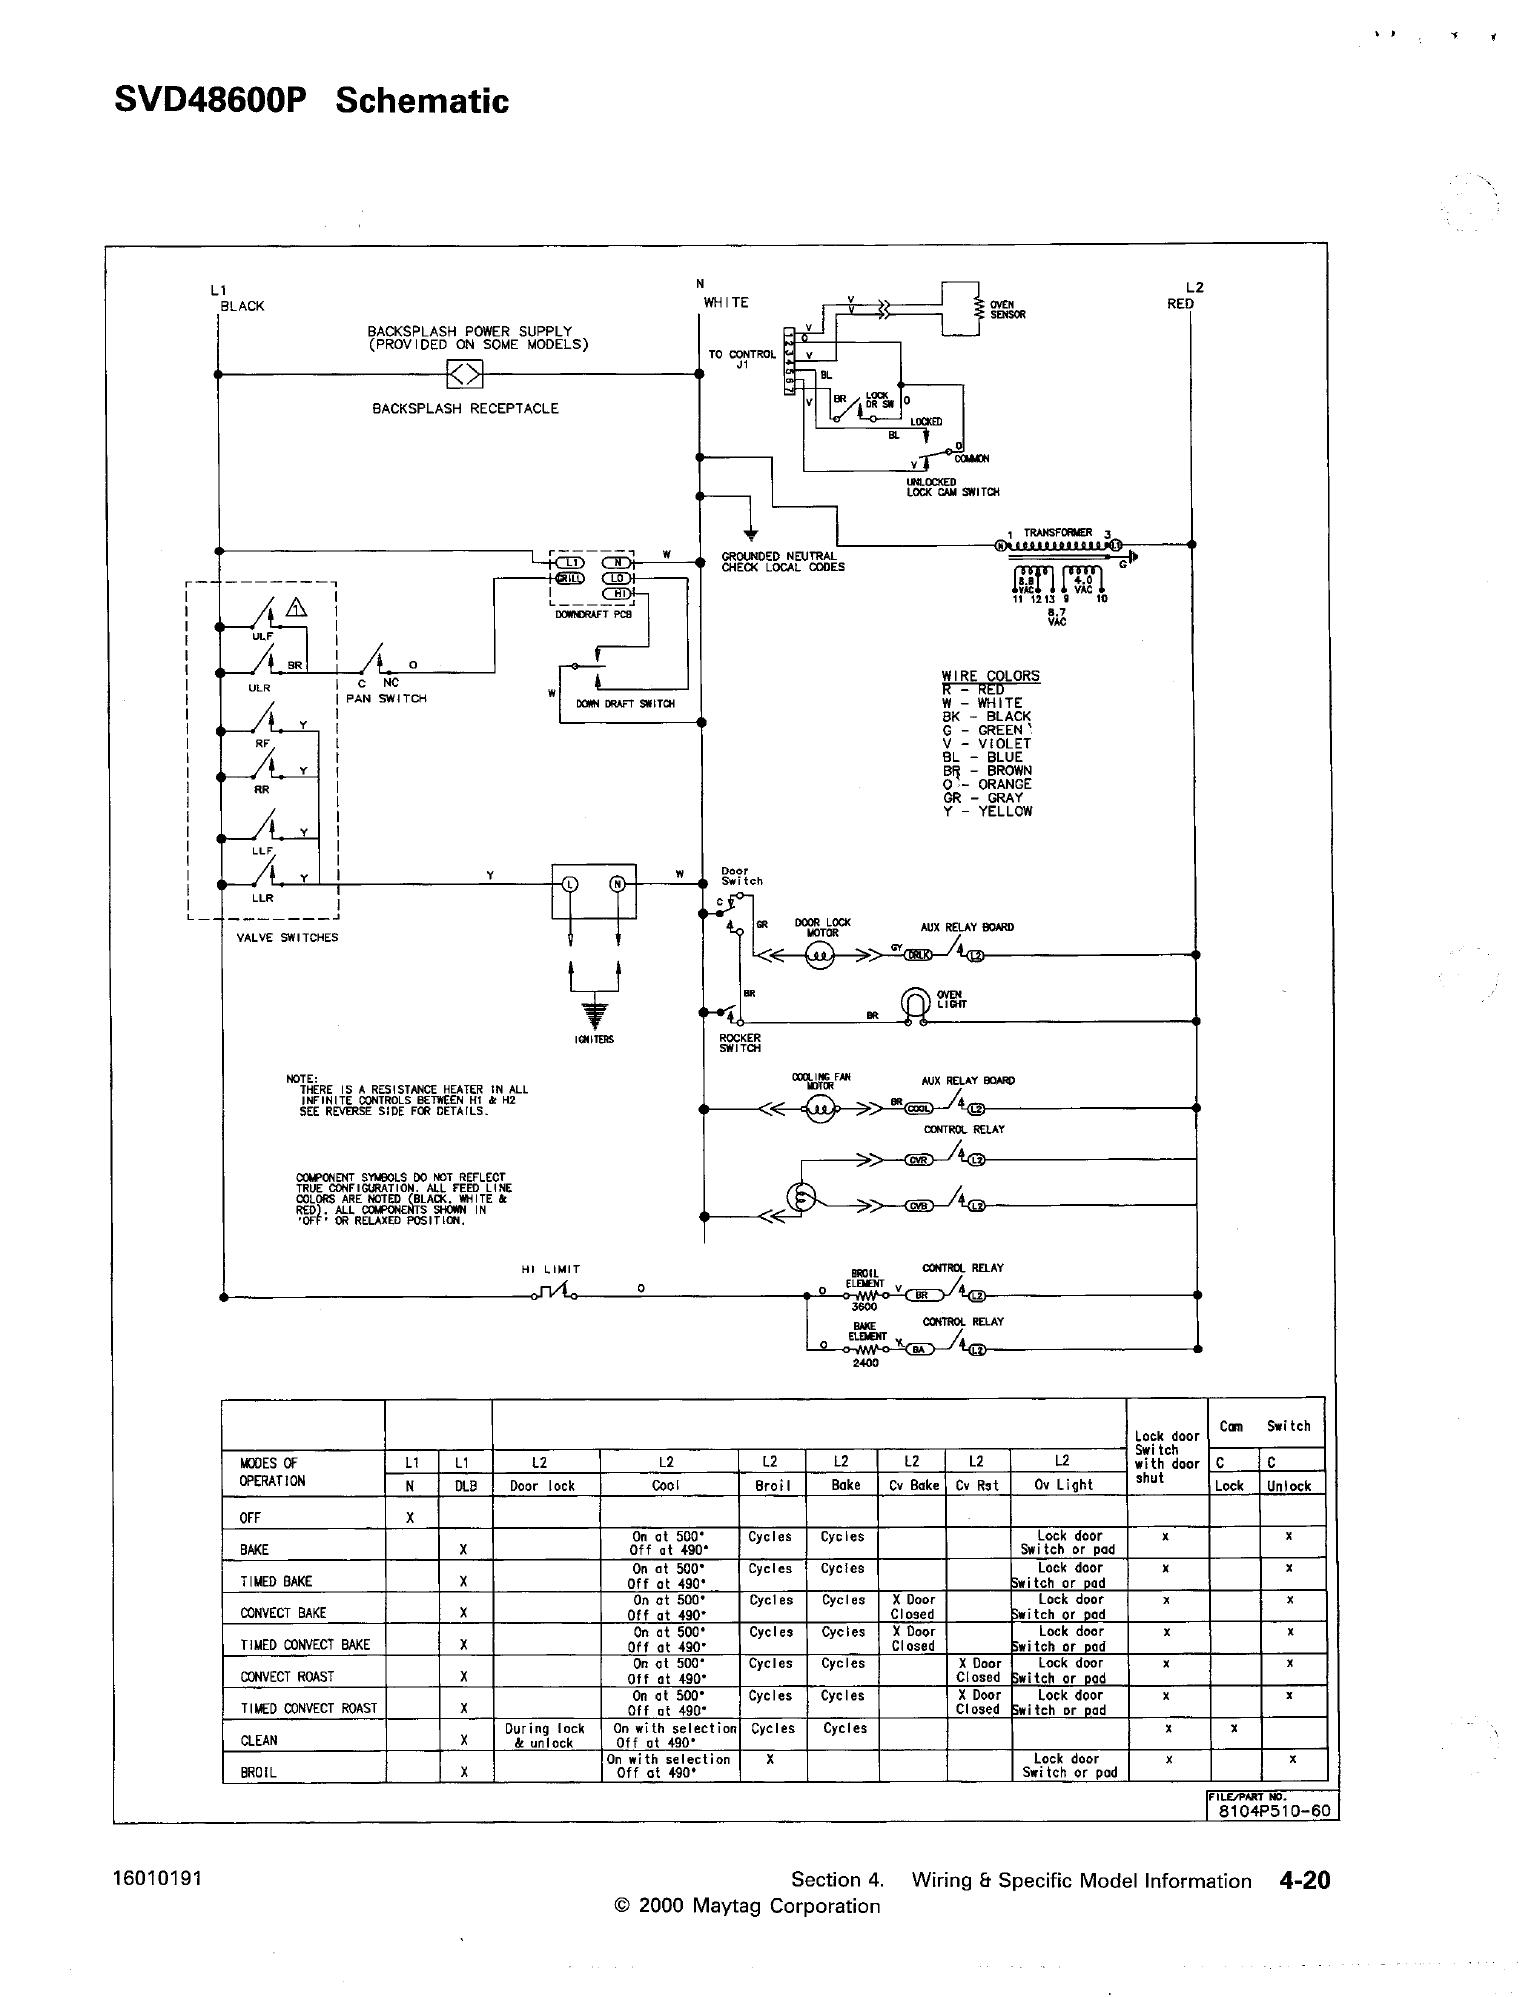 I Have A Jenn Air Svd48600p Am Replacing The Mother Board What Stove Top Wiring Diagram Graphic